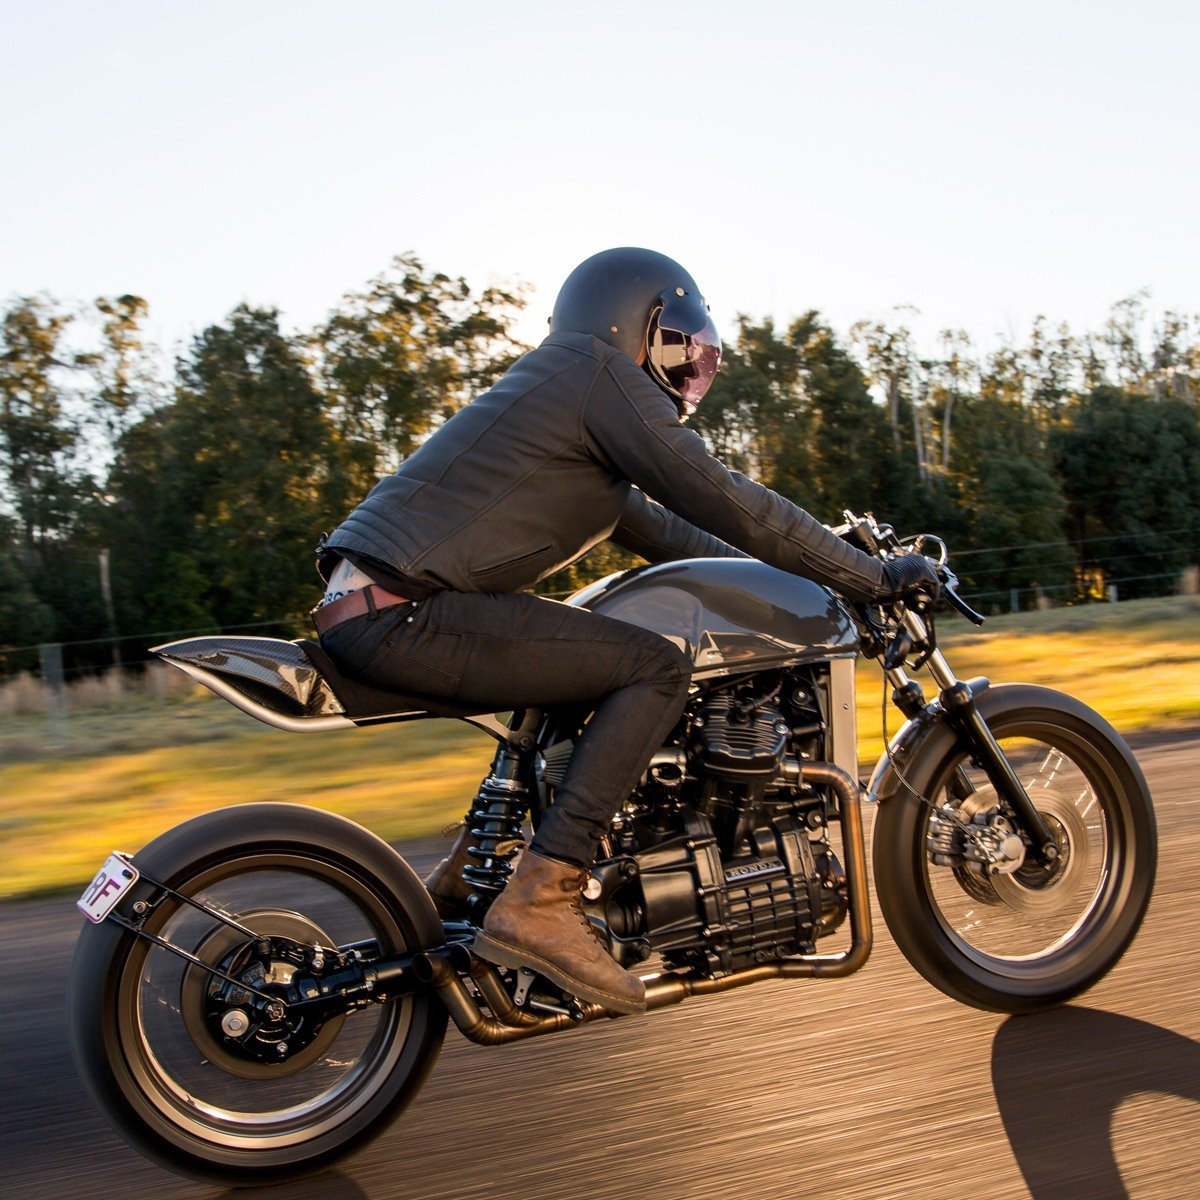 Cafe Racer CX500 honda performance custom build